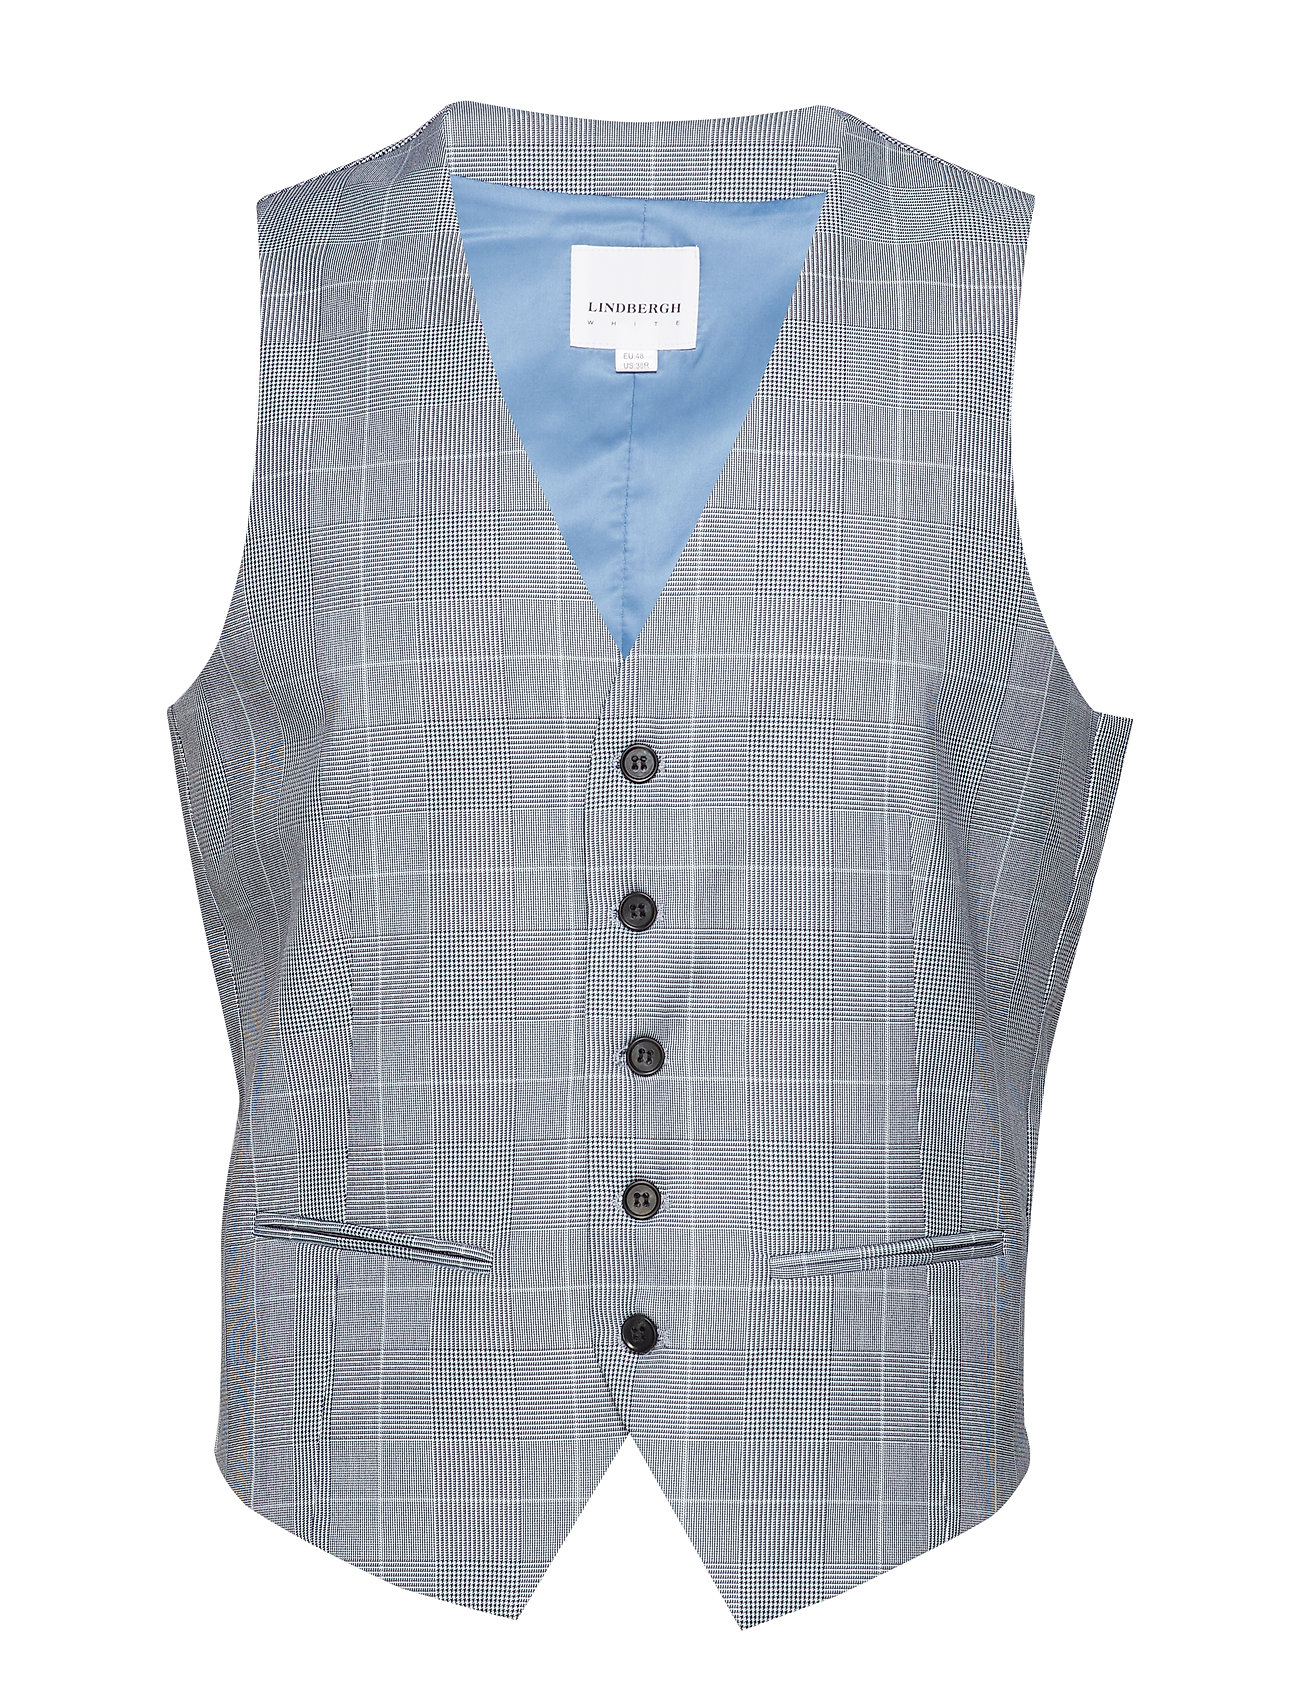 Lindbergh Waist coat for checked suit - BLUE CHECK